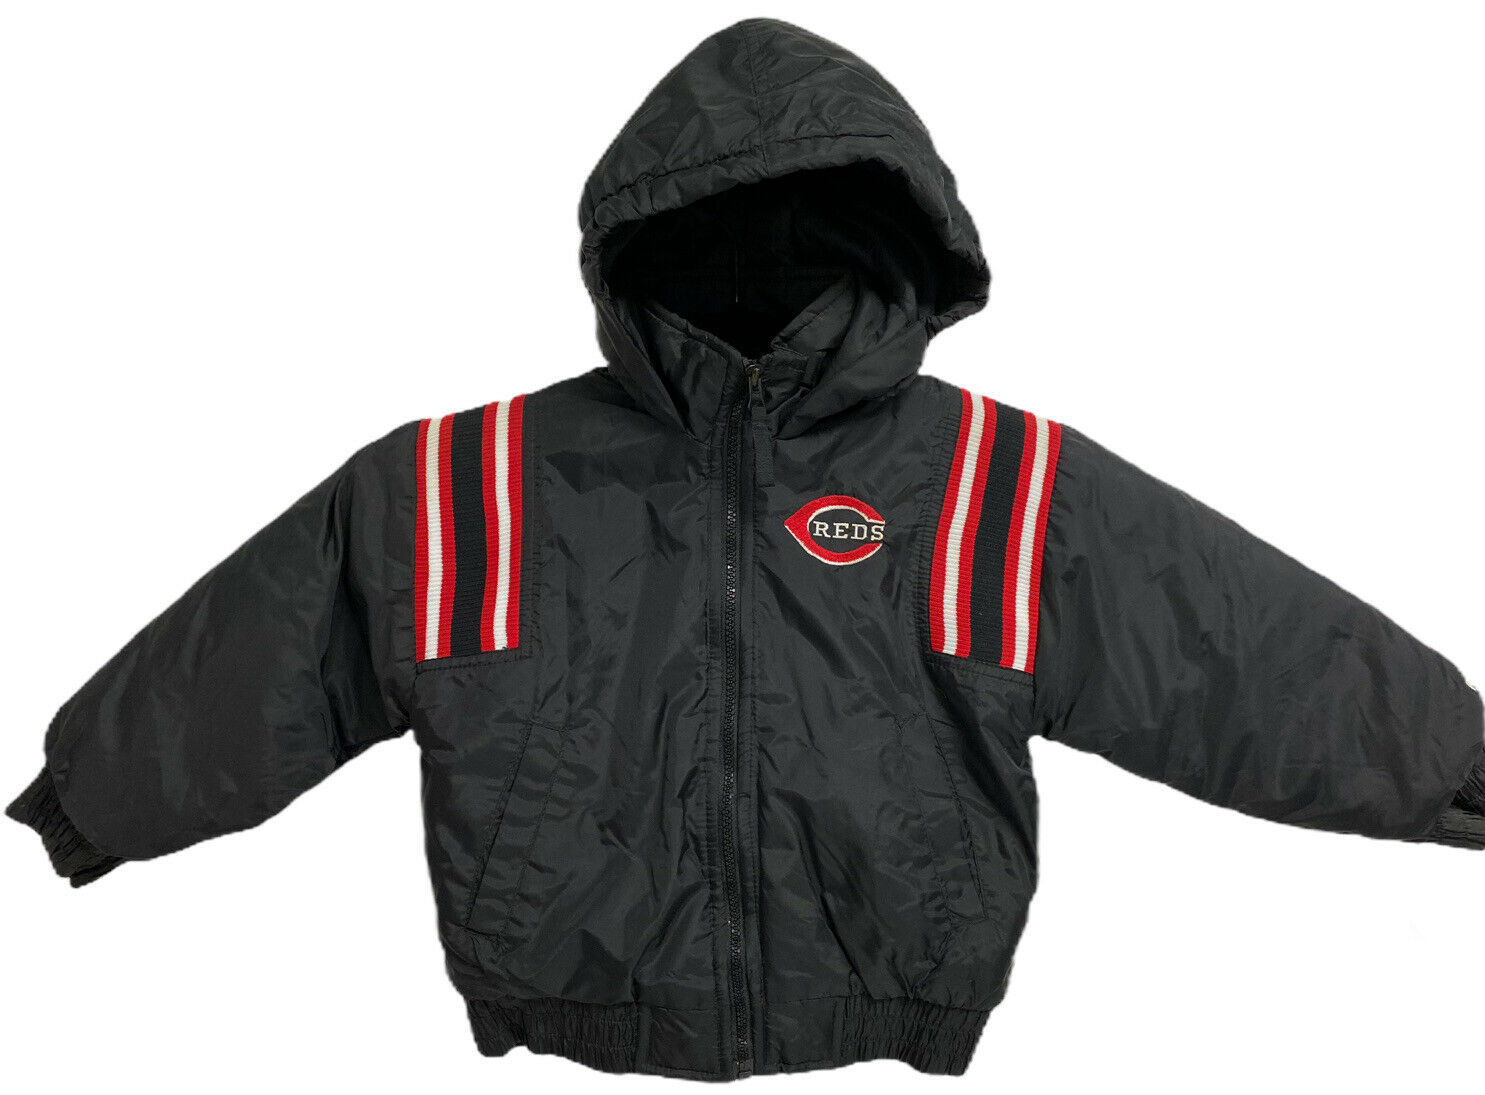 Primary image for Cincinnati Reds Authentic Genuine Merchandise Puma Jacket Youth Size Medium 5-6